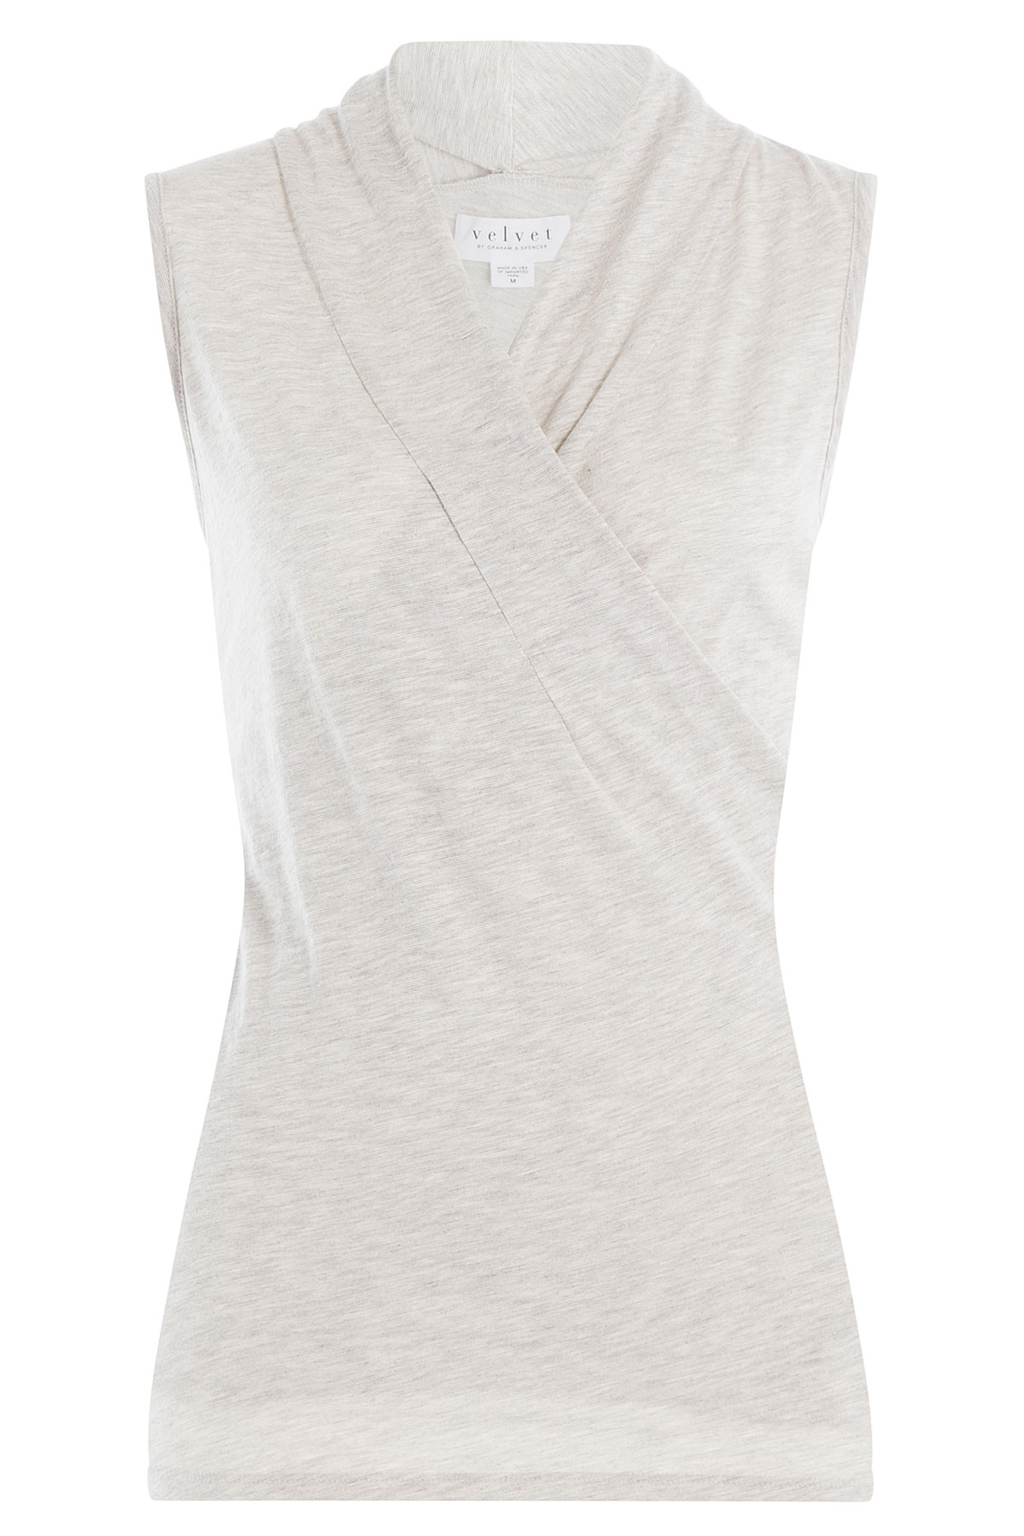 Cotton Blend Sleeveless Top - neckline: v-neck; pattern: plain; sleeve style: sleeveless; length: below the bottom; bust detail: subtle bust detail; predominant colour: light grey; occasions: work; style: top; fibres: cotton - 100%; fit: tailored/fitted; shoulder detail: subtle shoulder detail; sleeve length: sleeveless; pattern type: fabric; texture group: jersey - stretchy/drapey; season: s/s 2016; wardrobe: highlight